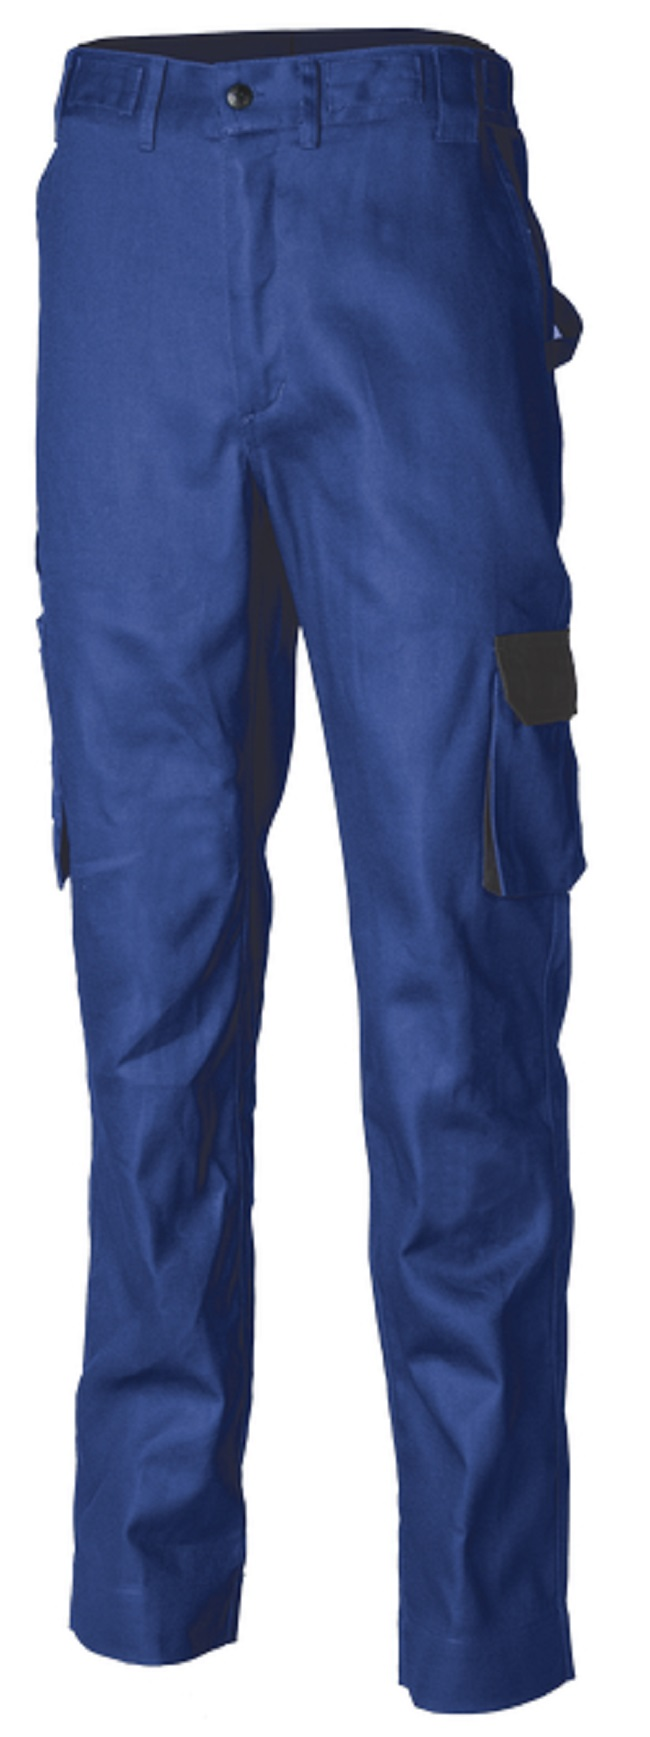 pantaloni-technicity-royal